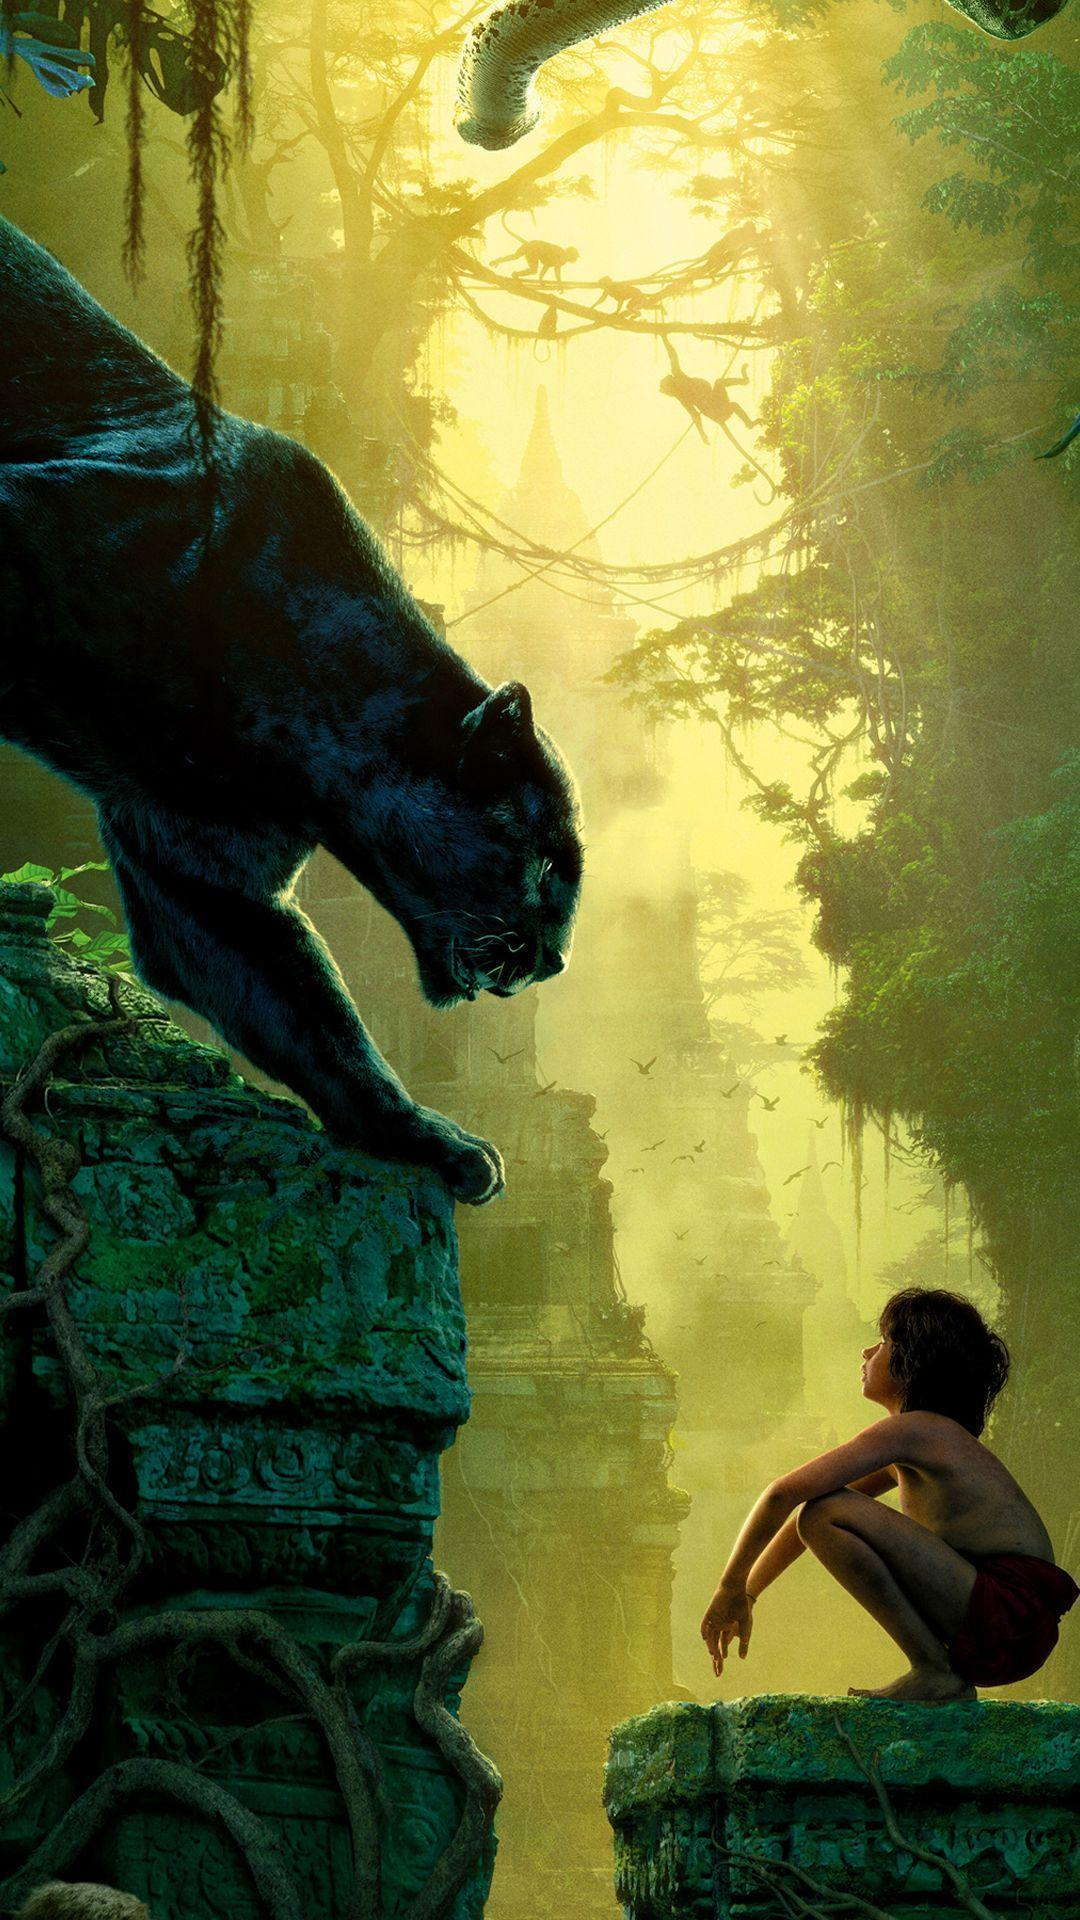 The Jungle Book 2016 Movie Wallpapers for iPhone